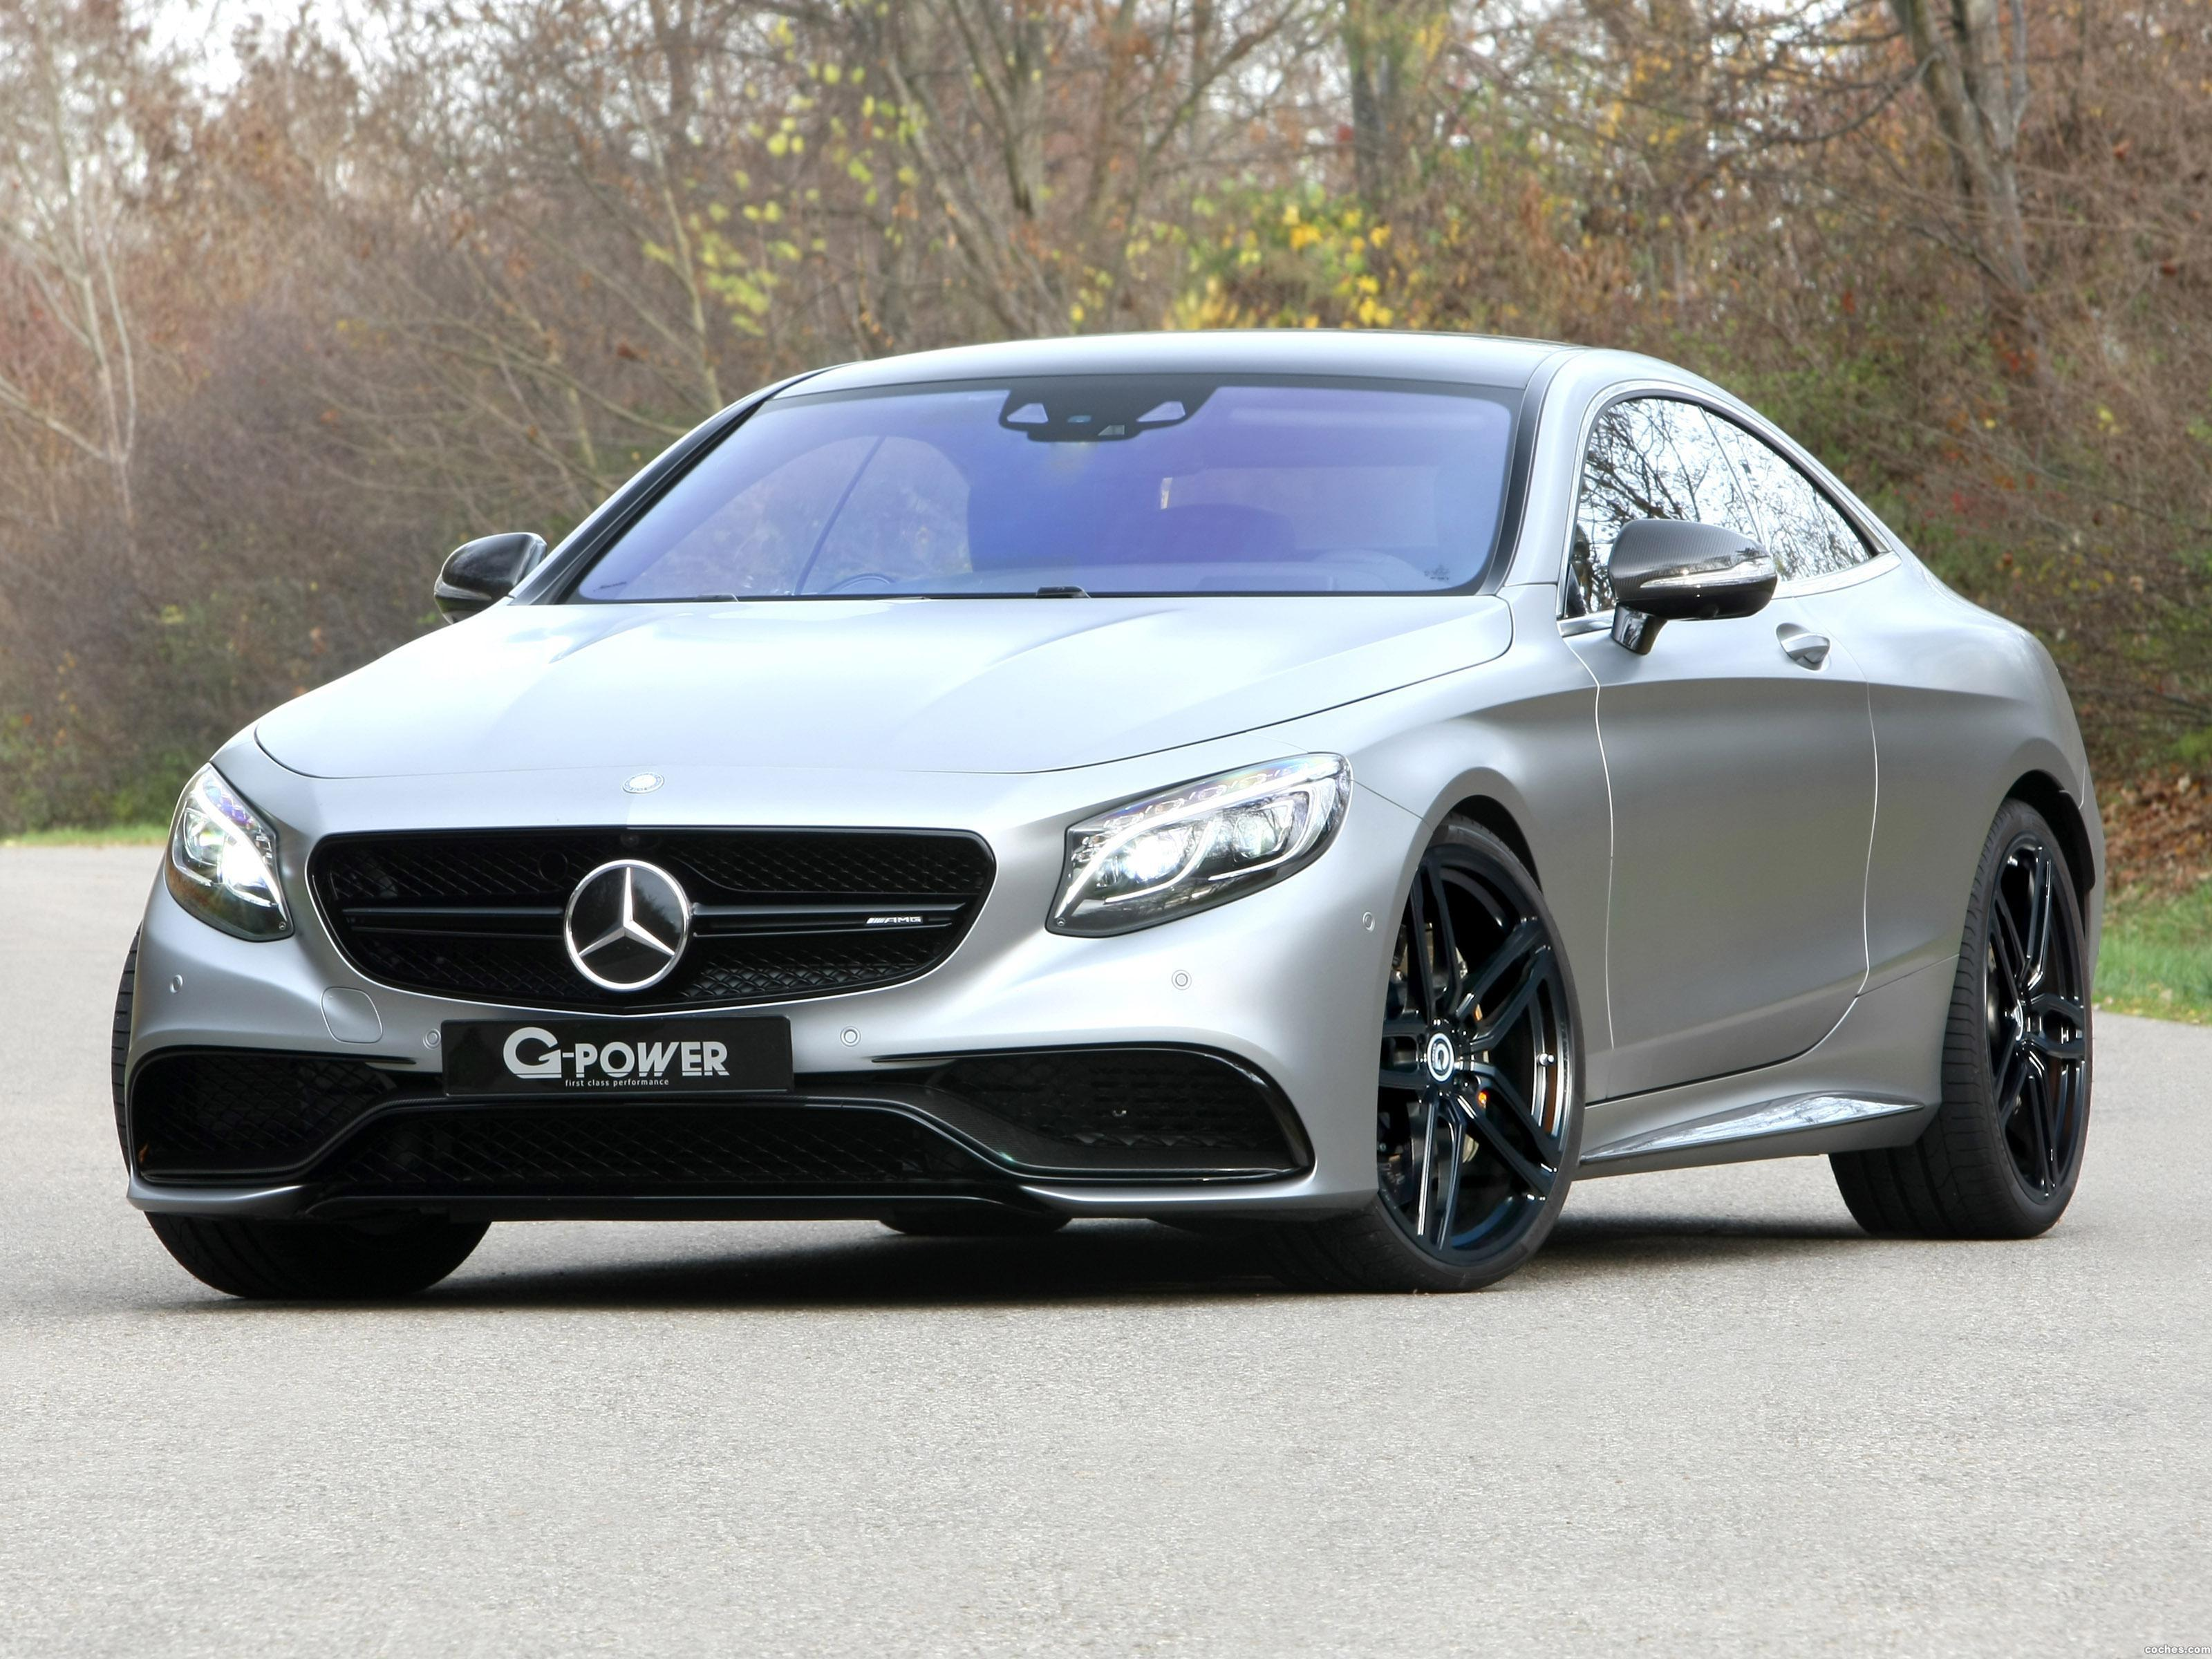 Foto 0 de G-power Mercedes AMG S63 Coupe C217 2016